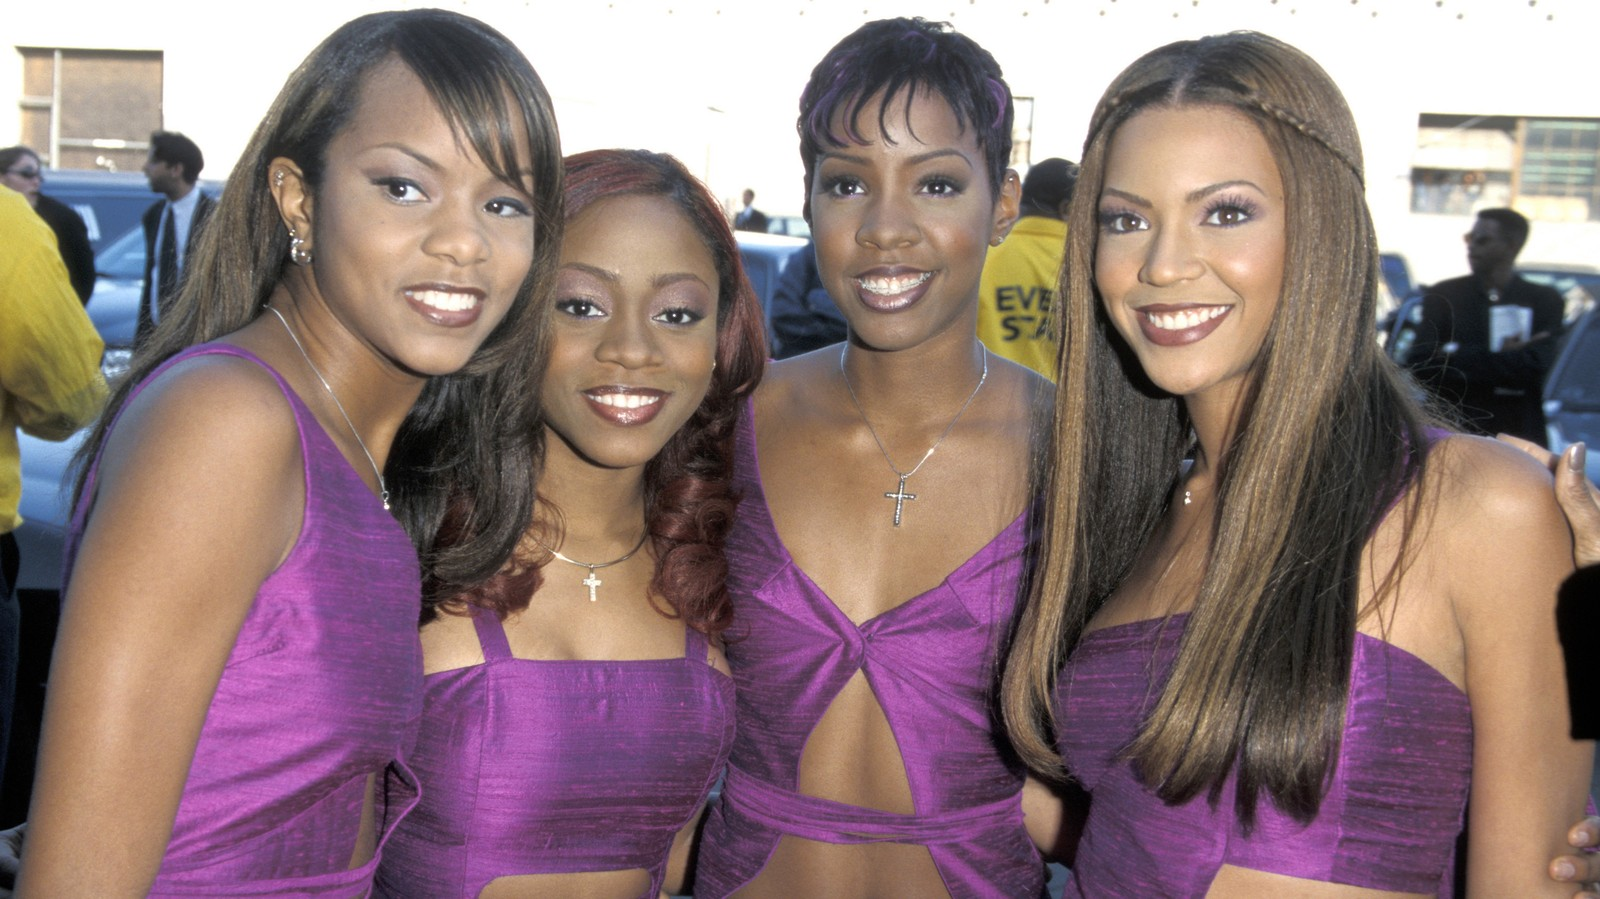 Destiny's Child's 'The Writing's on the Wall' Was Never About Bashing Men